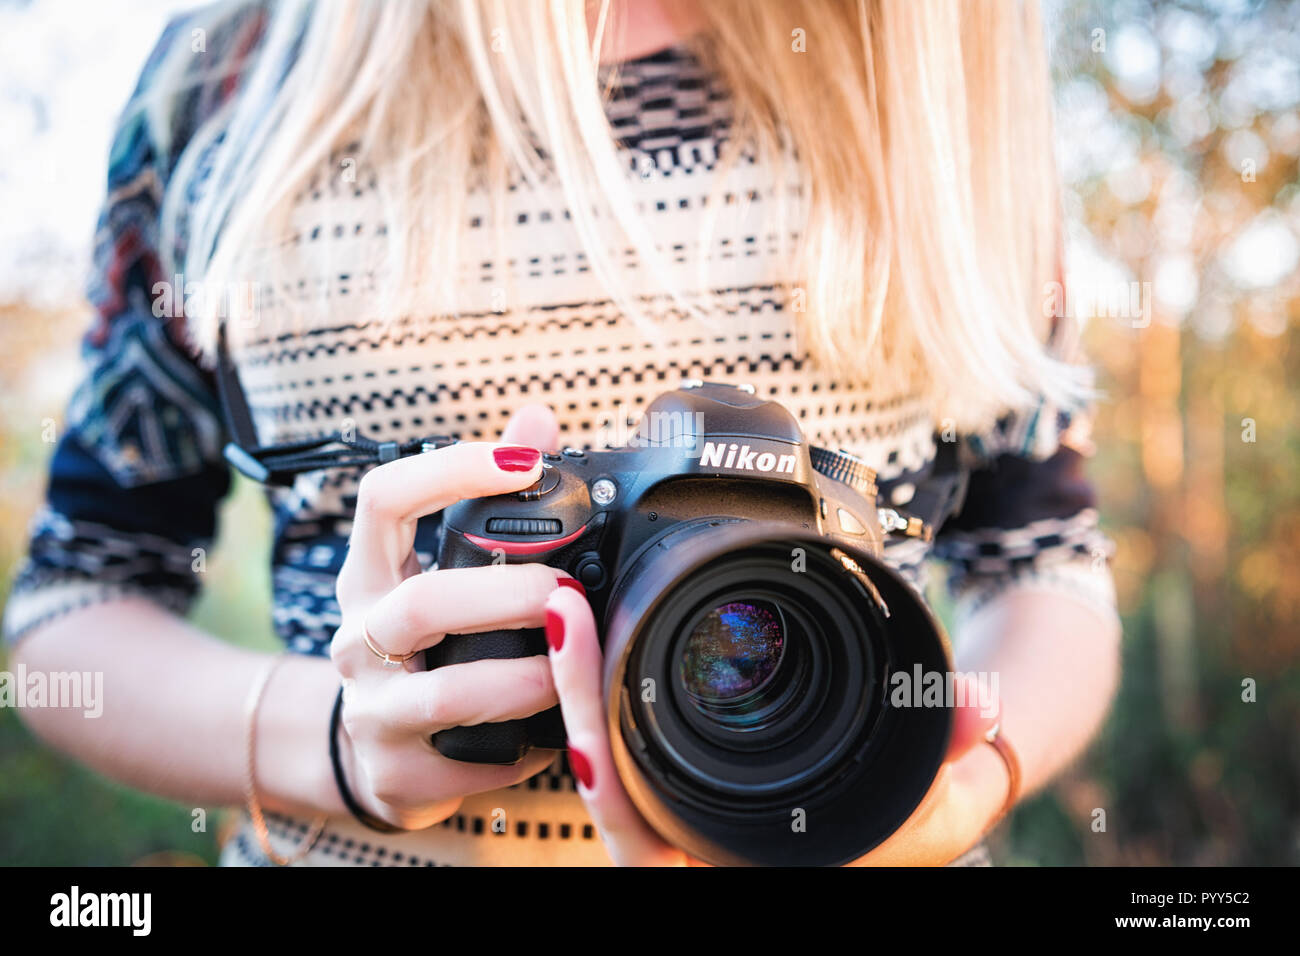 Moscow, Russia - October 4, 2014: Girl photographer holds Nikon D610 camera and Nikkor 50mm f/1.4G lens - Stock Image